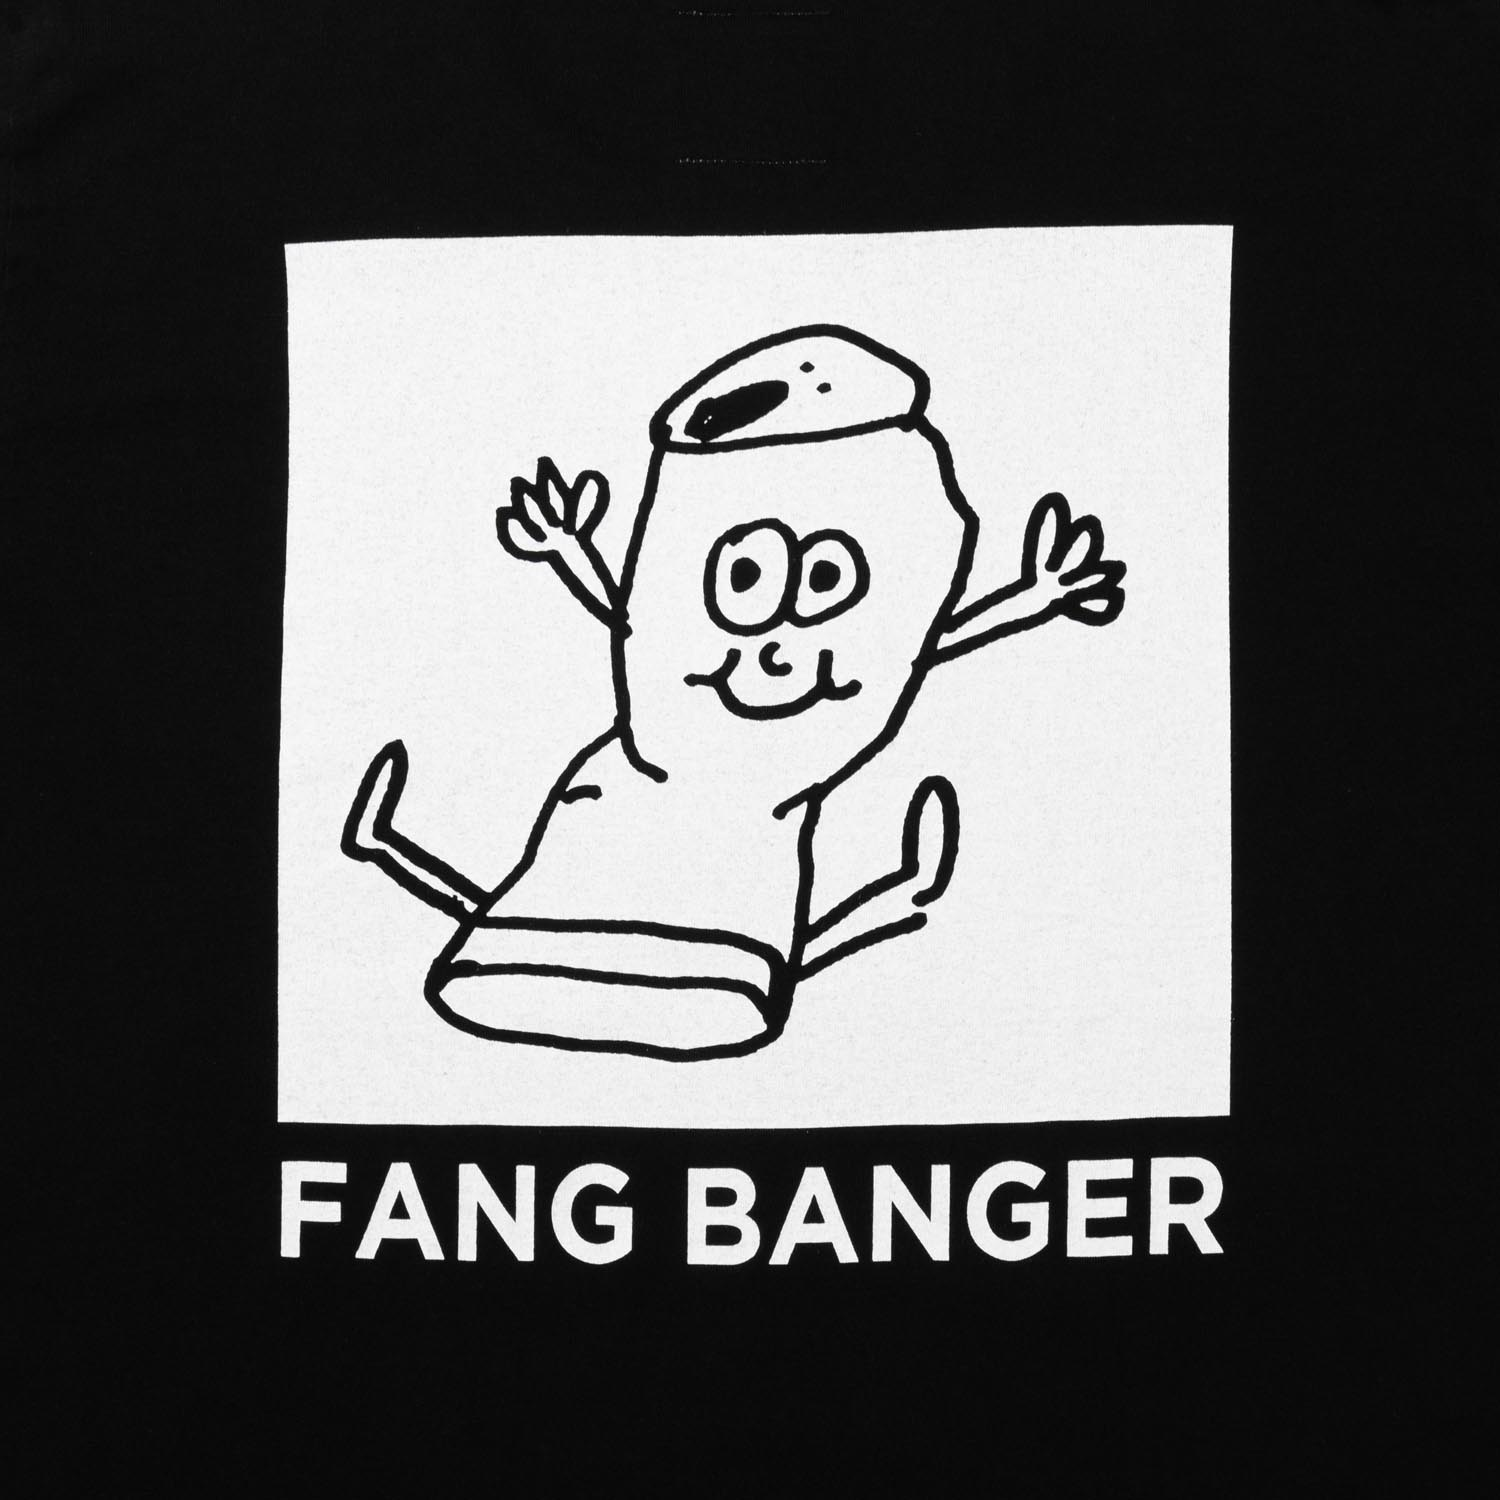 FANG BANGER LS designed by LUNG